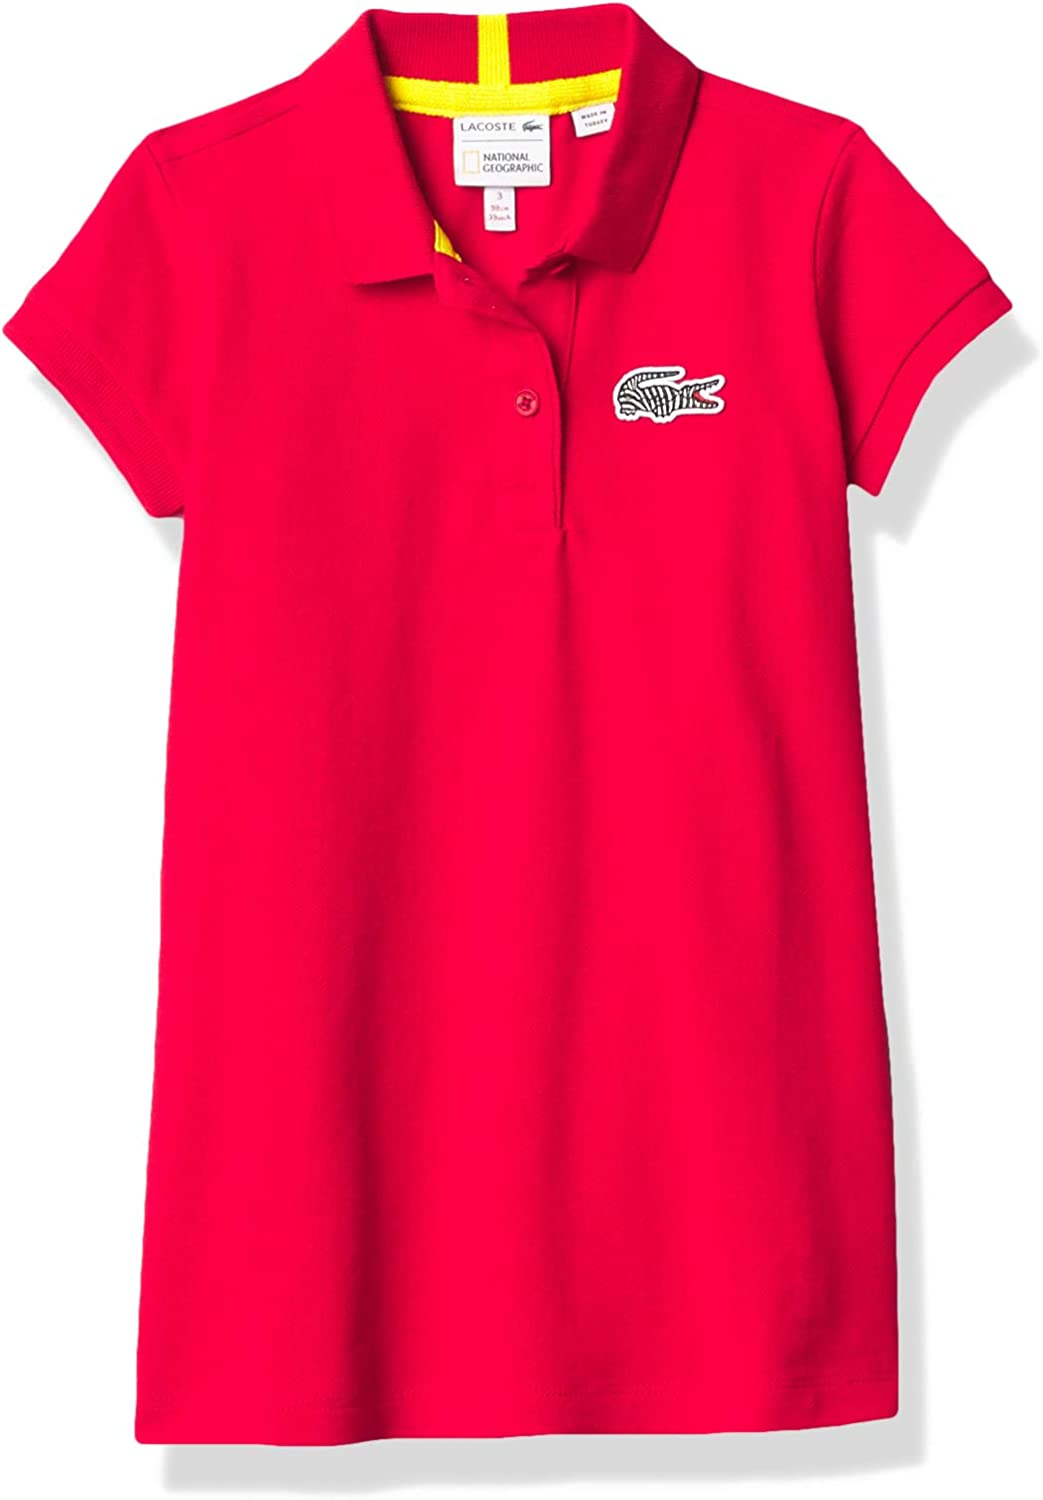 Lacoste Girls National Geographic Croc Polo Dress